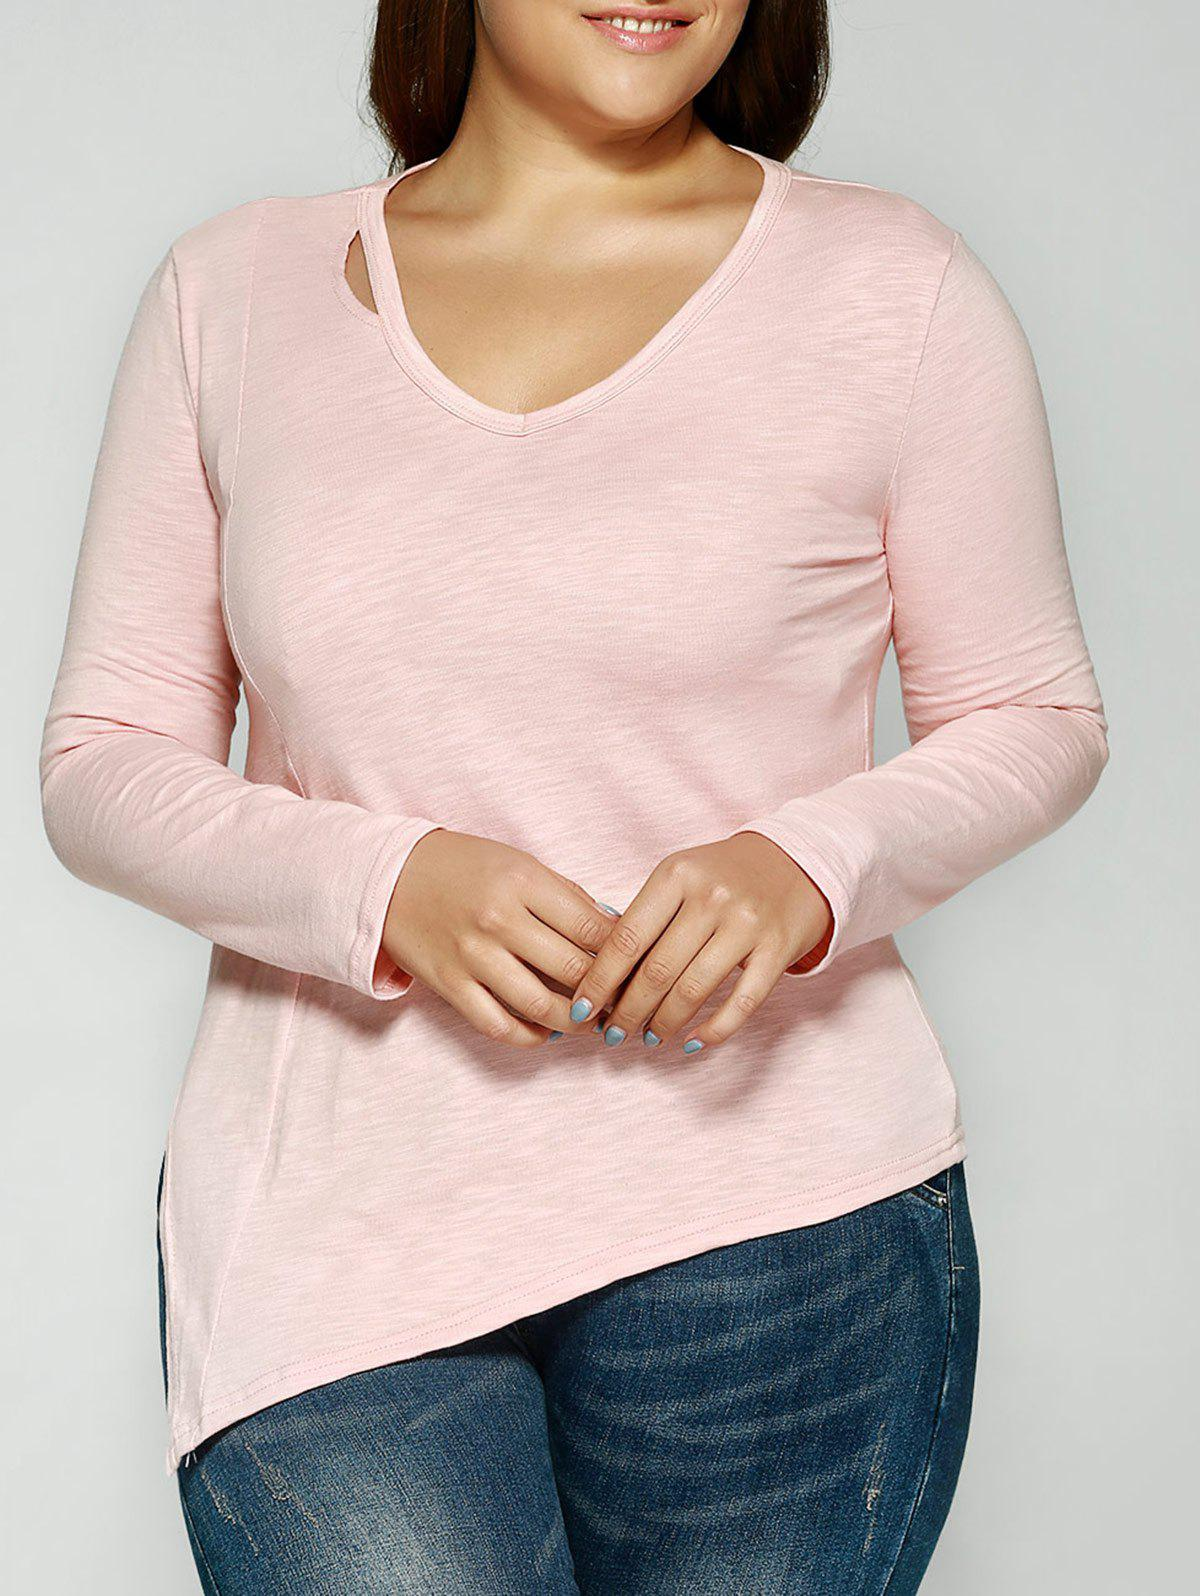 Fancy Cut Out V Neck Slant Asymmetric Slimming T-Shirt